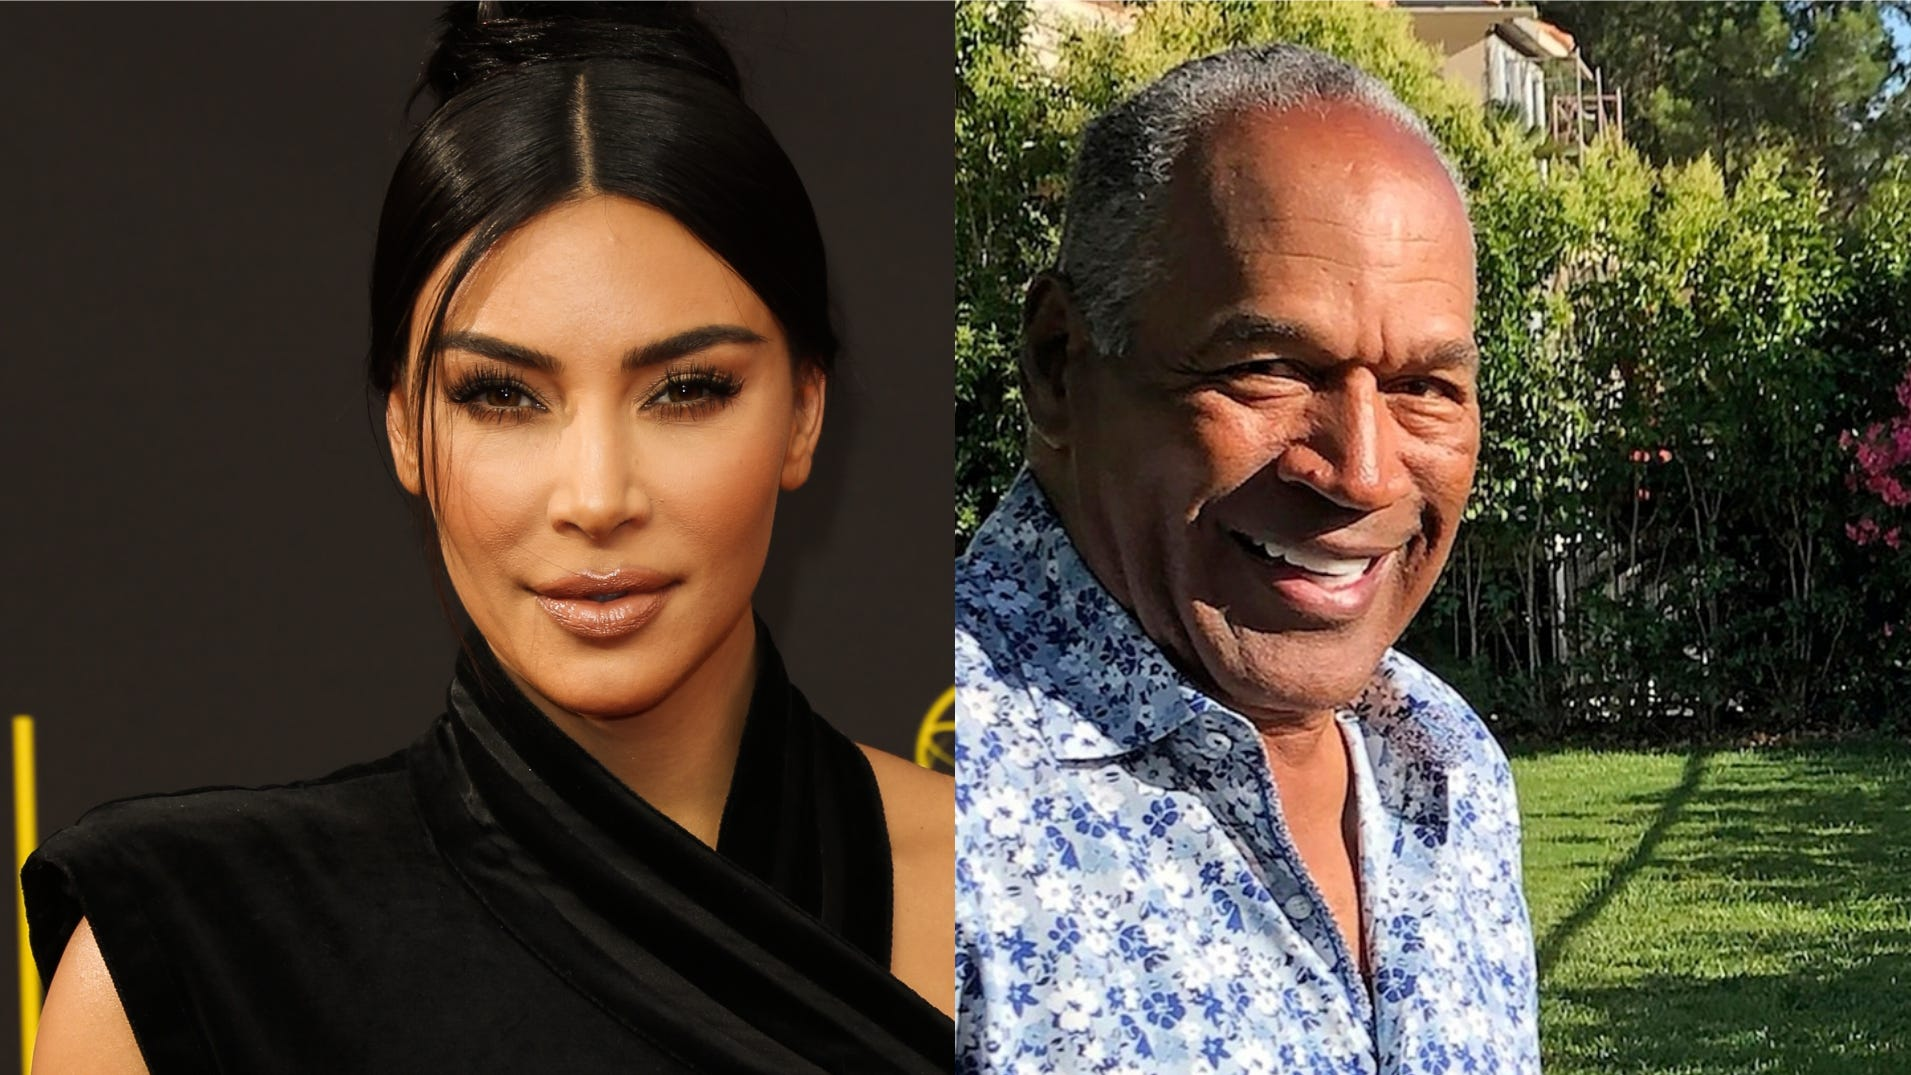 Kim Kardashian Talks Emotional O J Simpson Reunion We Were Crying Additionally, there are three tappable items. o j simpson reunion